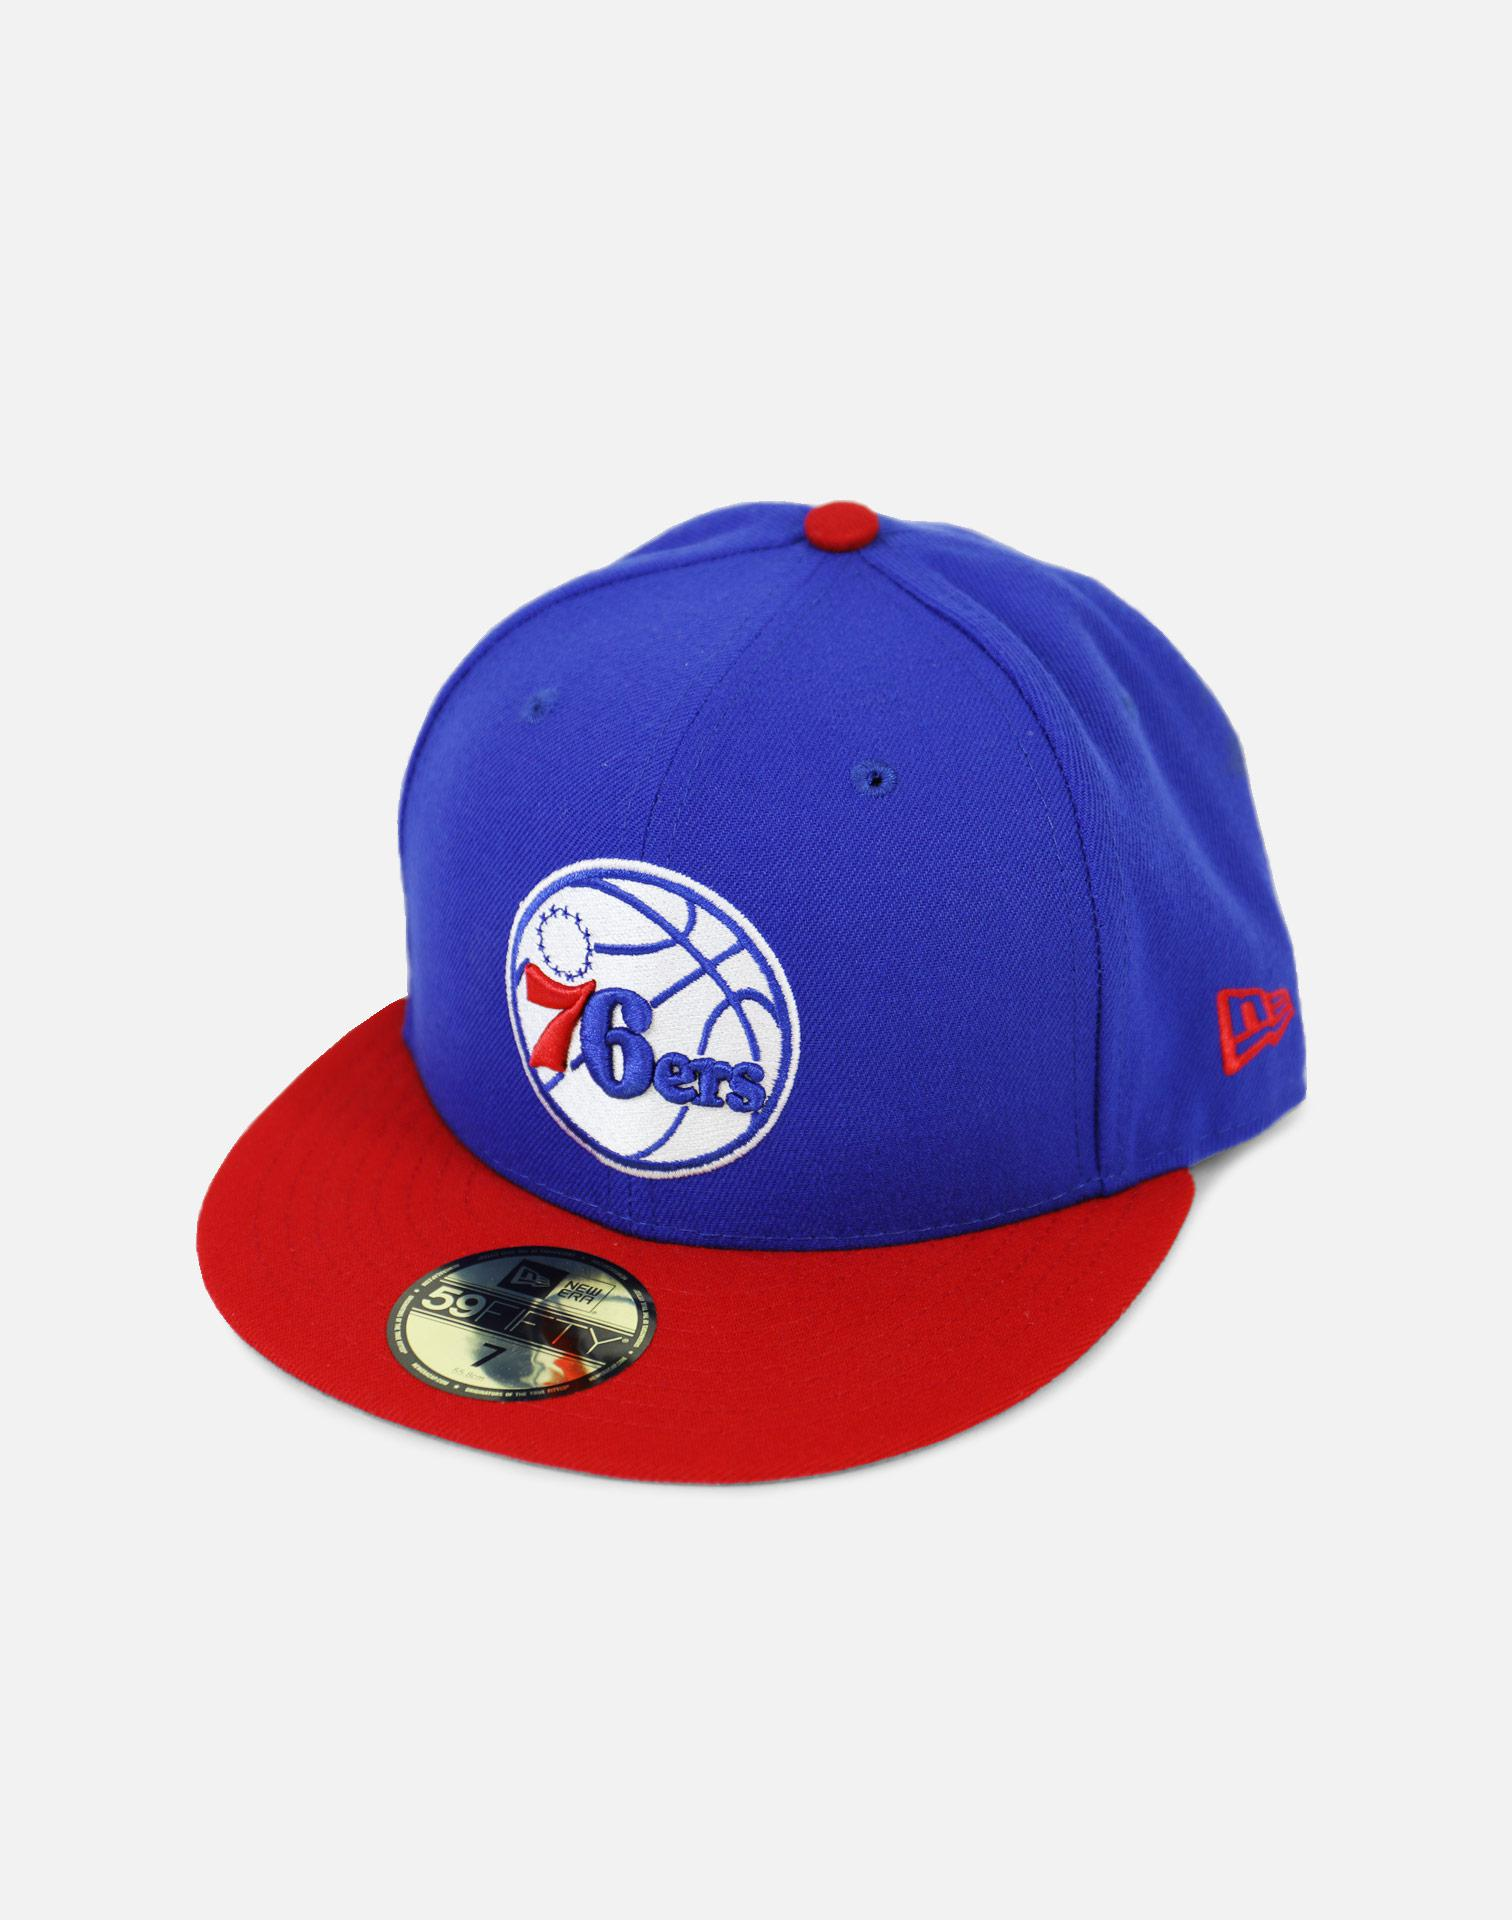 buy popular 6de4e 600c2 purchase philadelphia 76ers gray royal white red 59fifty fitted 91c5c d9863